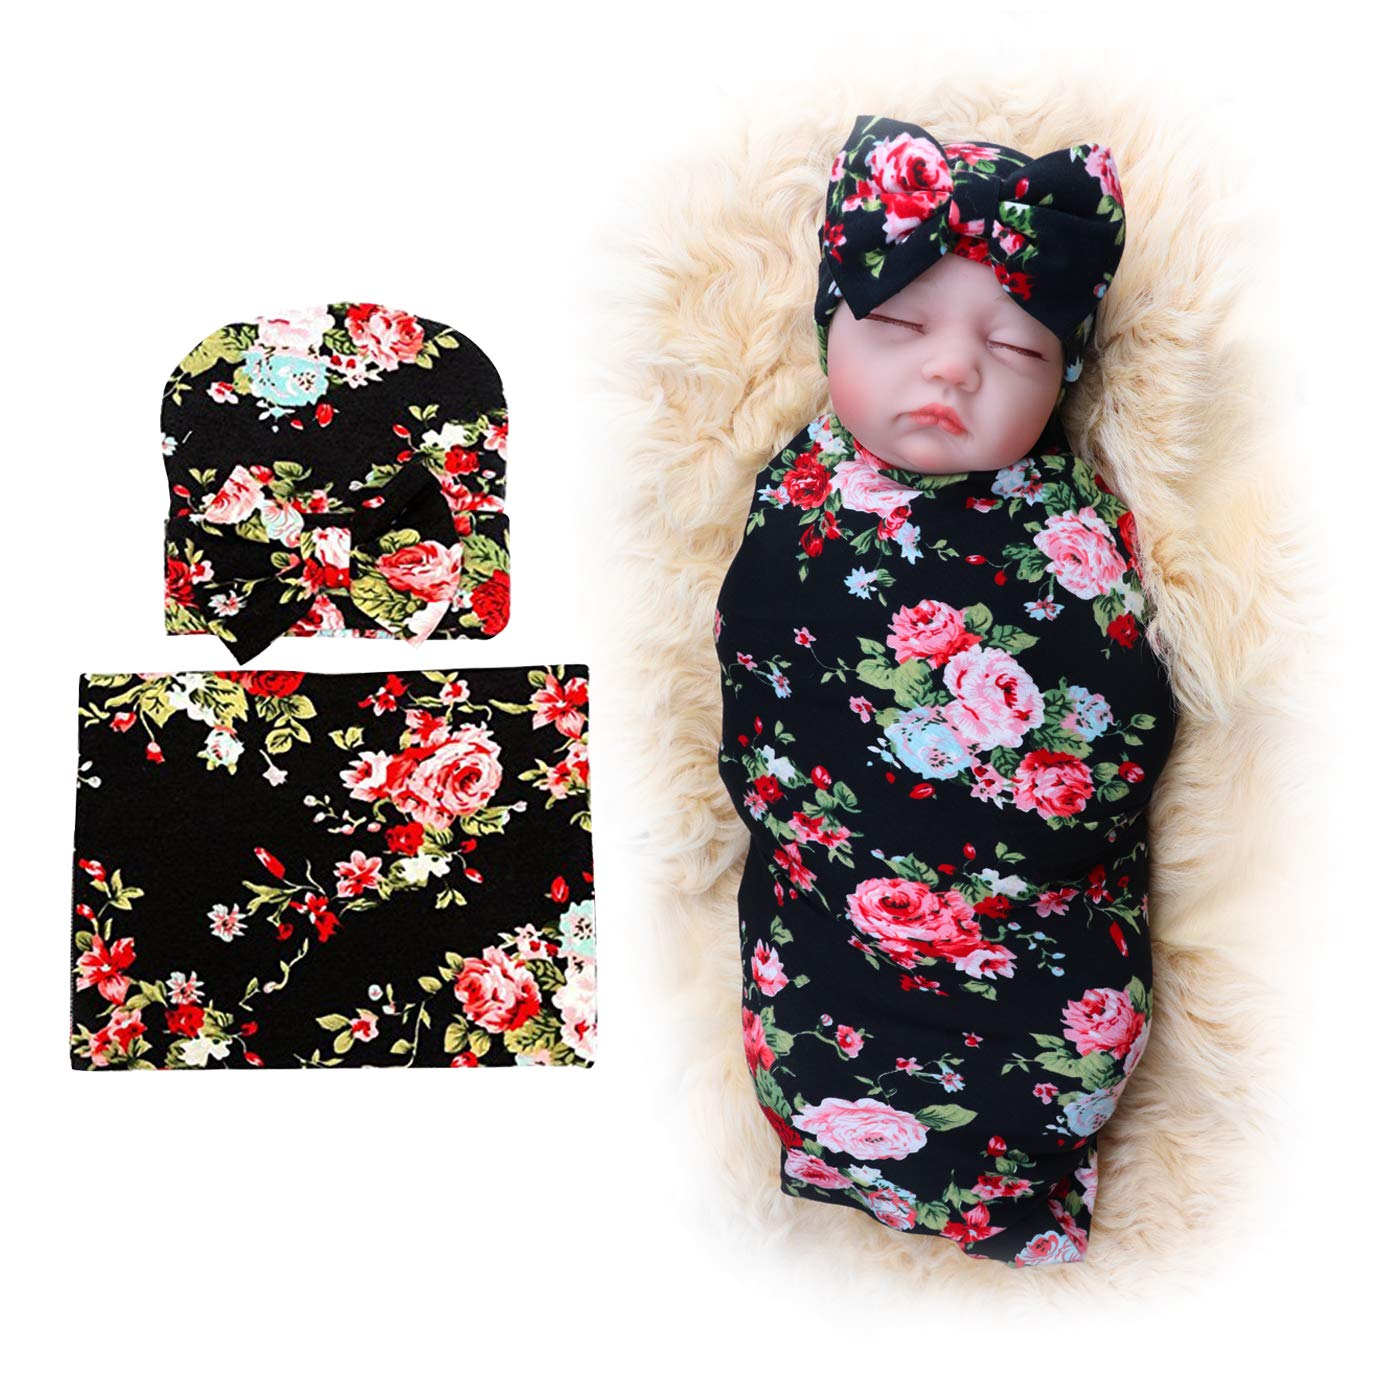 1 Pack BQUBO Newborn Floral Receiving Blankets Newborn Baby Swaddling with Headbands or Hats Sleepsack Toddler Warm IC0003 IC0003-4A